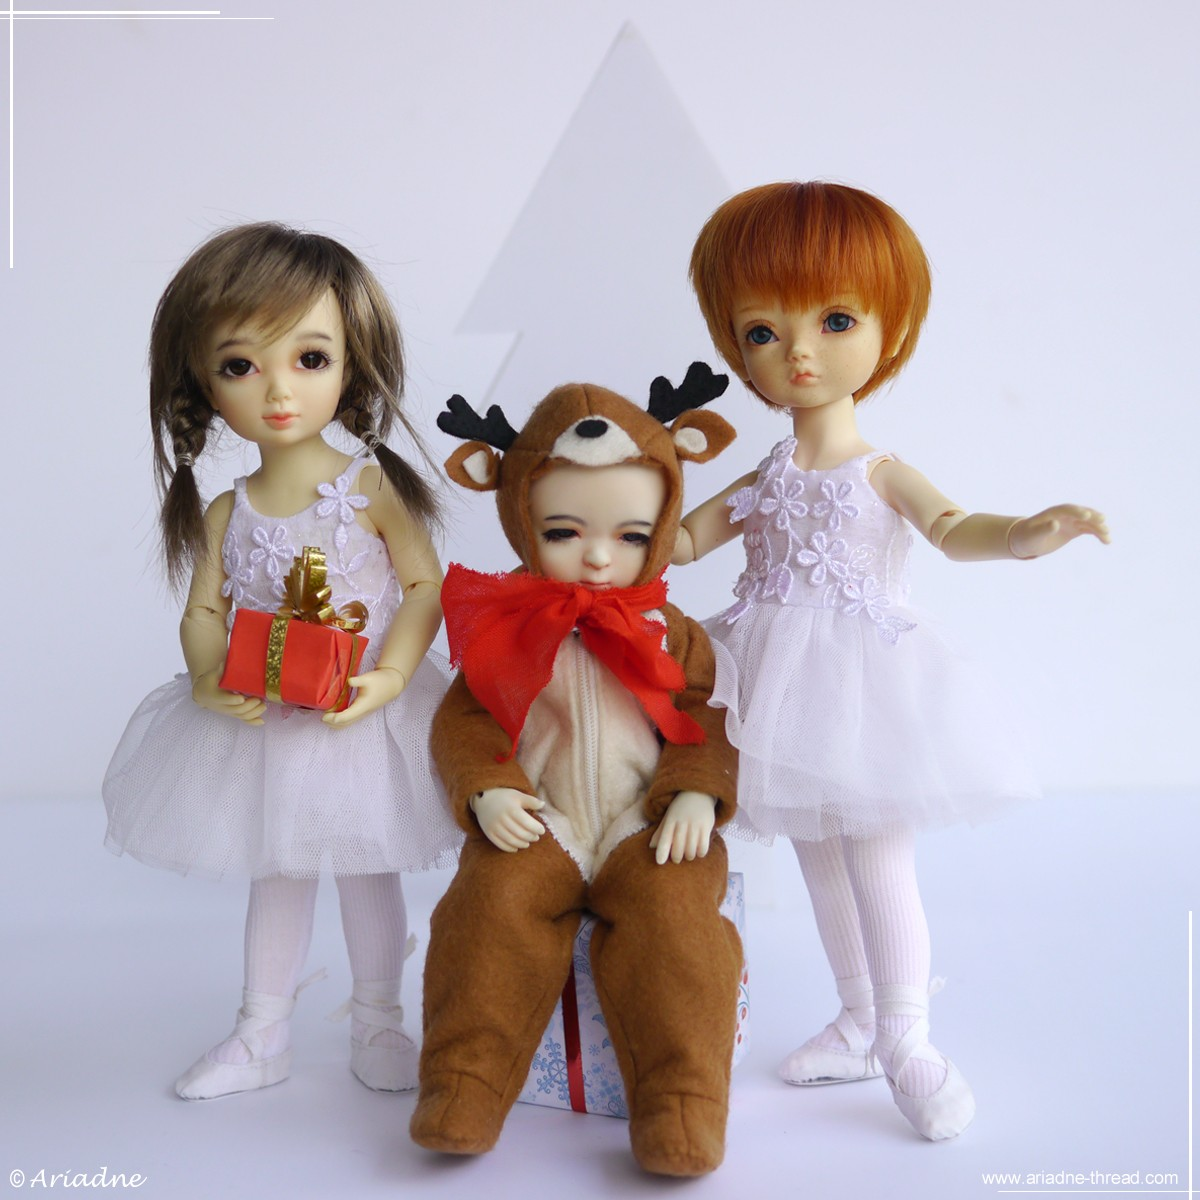 Dollsbe Paprika, Iplehouse BID Nami in snowflakes costumes and Harucasting Nanni in reindeer costume wish you a Marry Christmas!